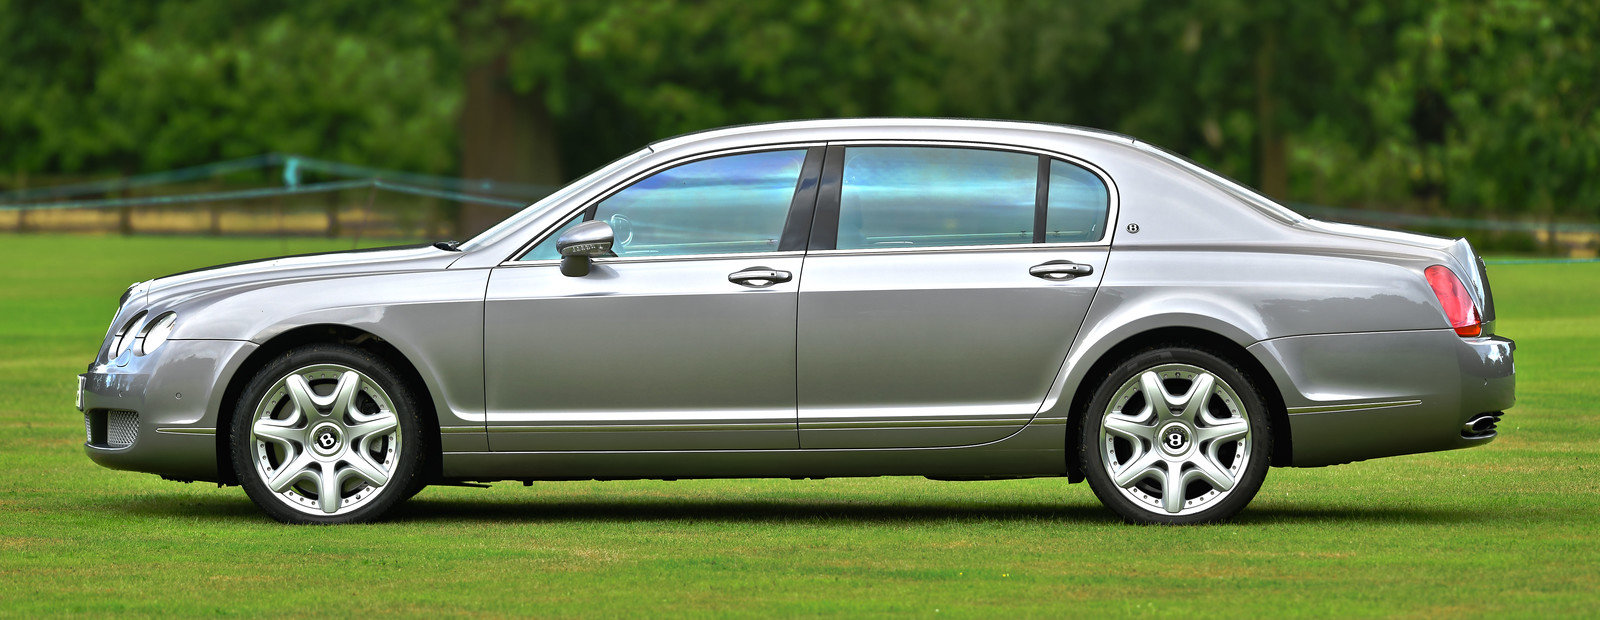 2006 Bentley Continental Flying Spur For Sale (picture 2 of 6)